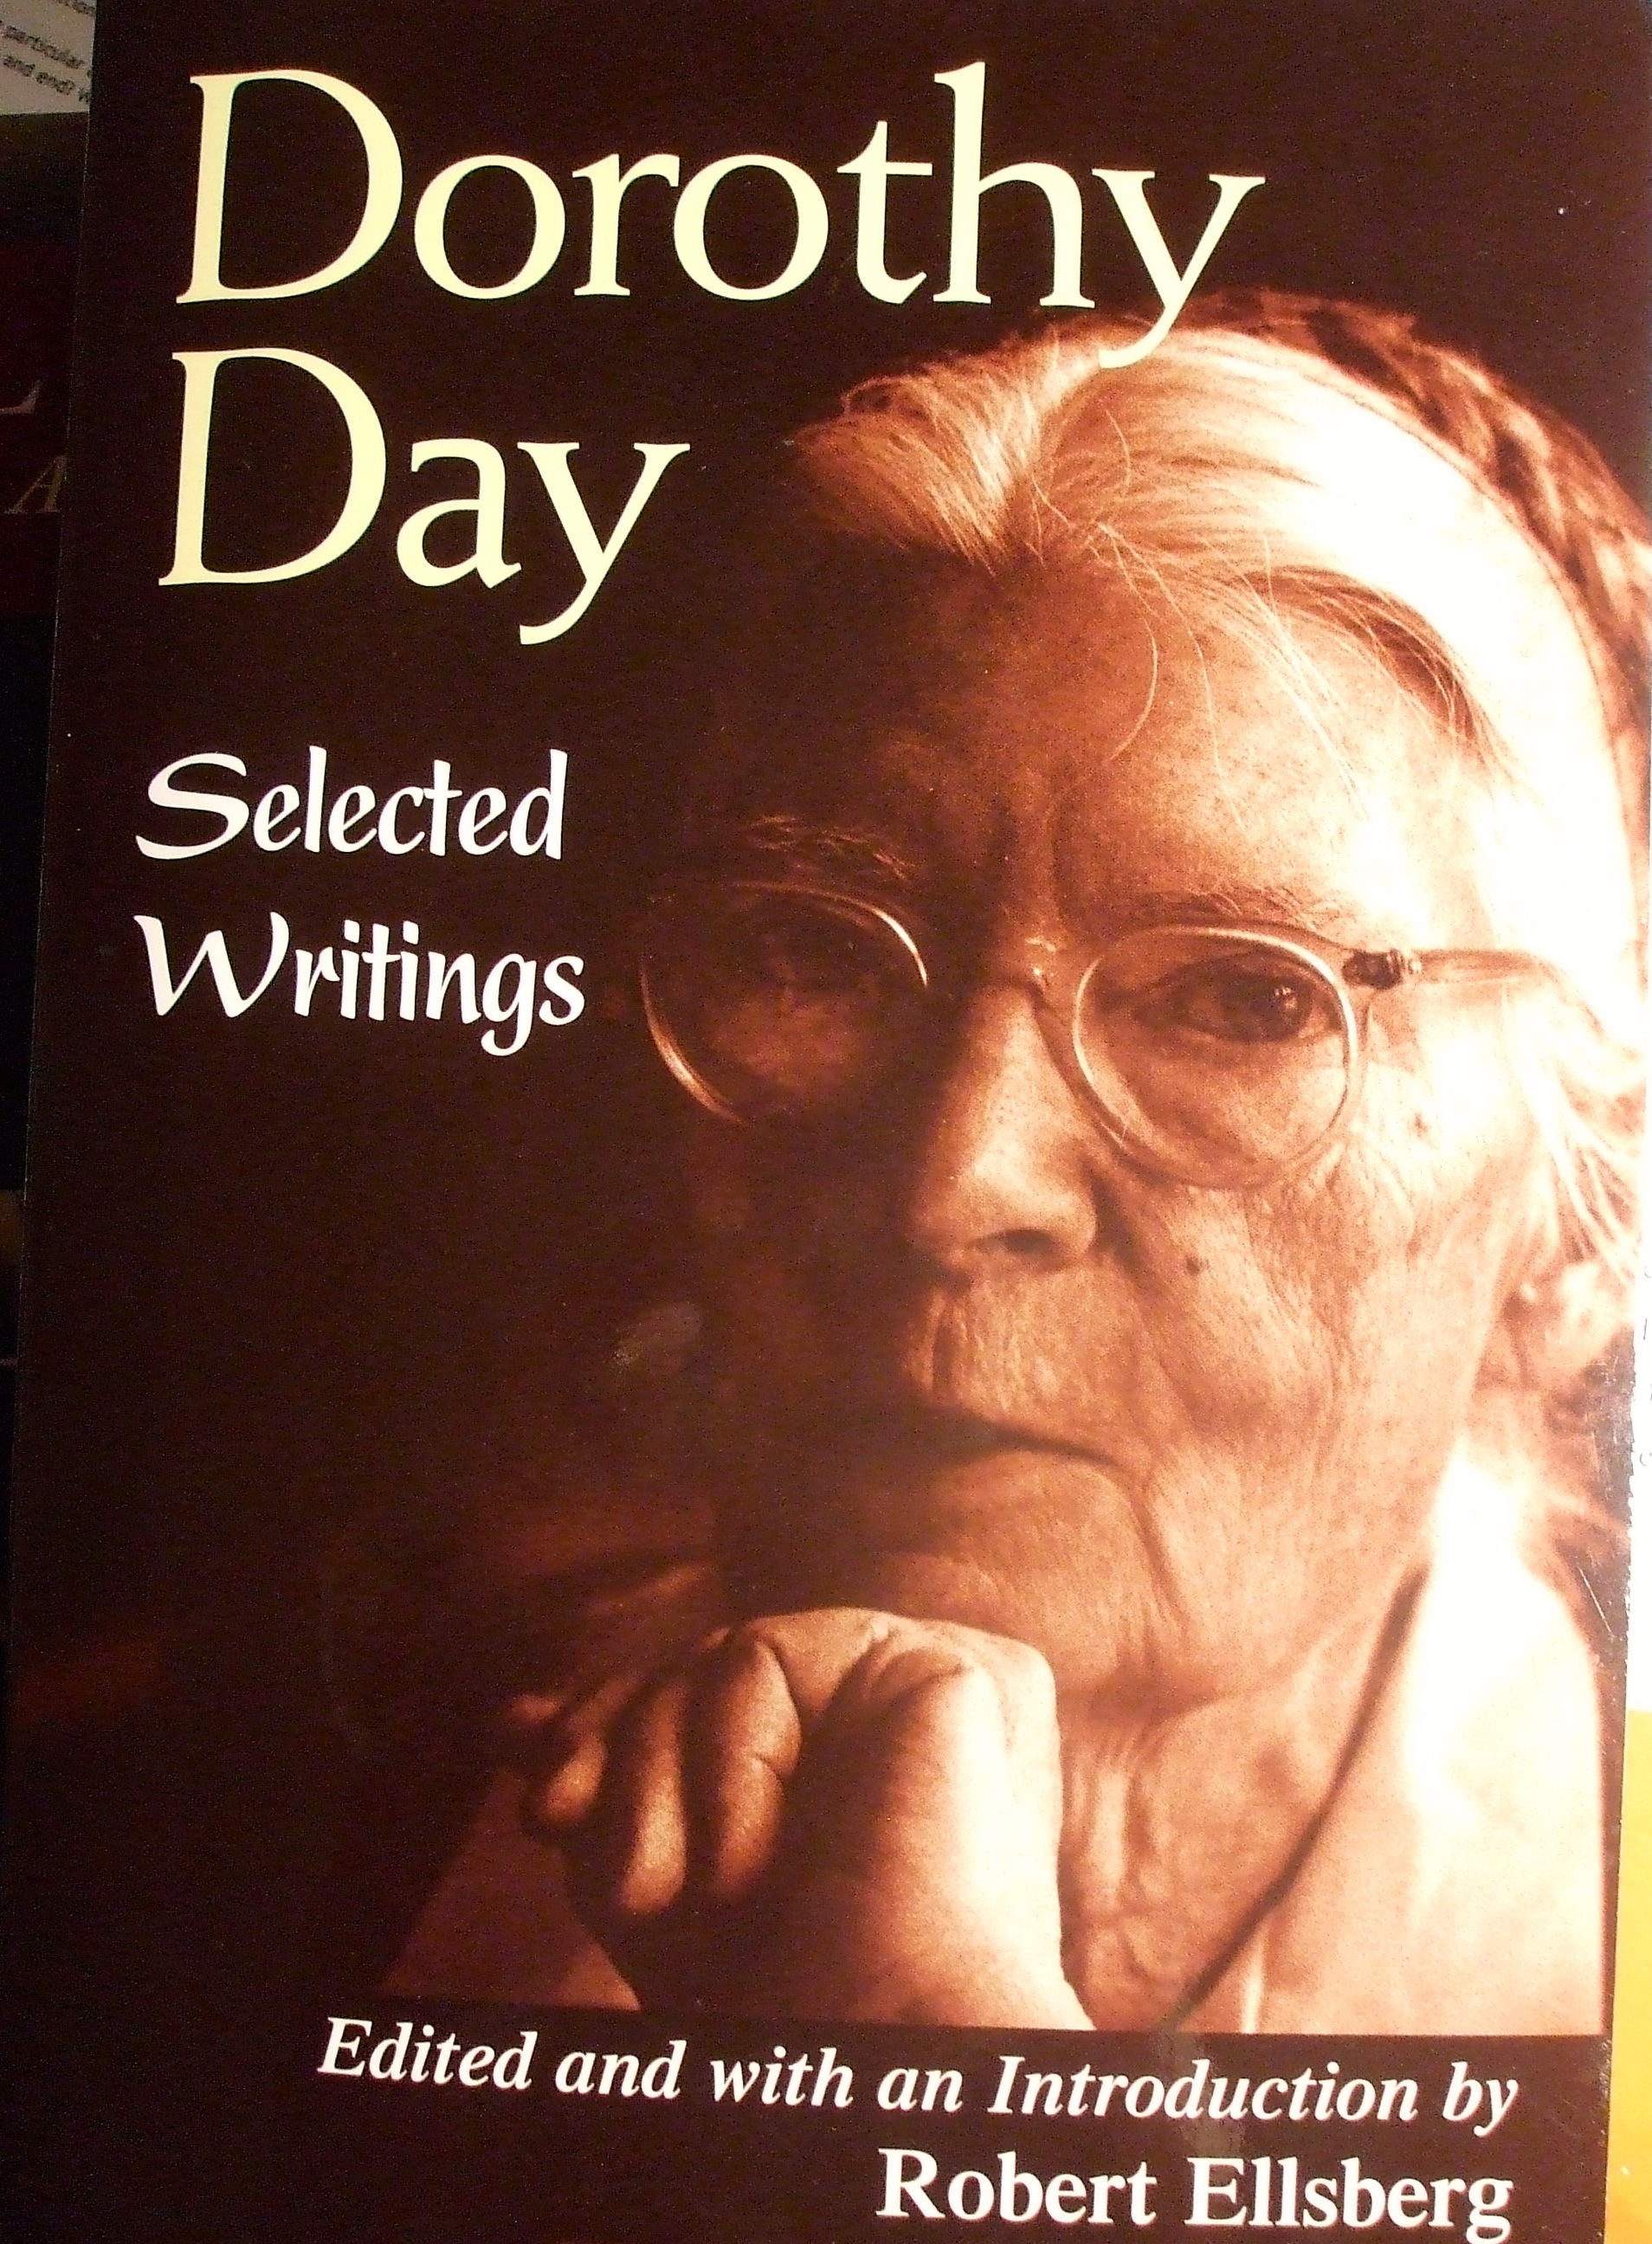 dorothy day 77 quotes from dorothy day: 'the greatest challenge of the day is: how to bring about a revolution of the heart, a revolution which has to start with each one of us.